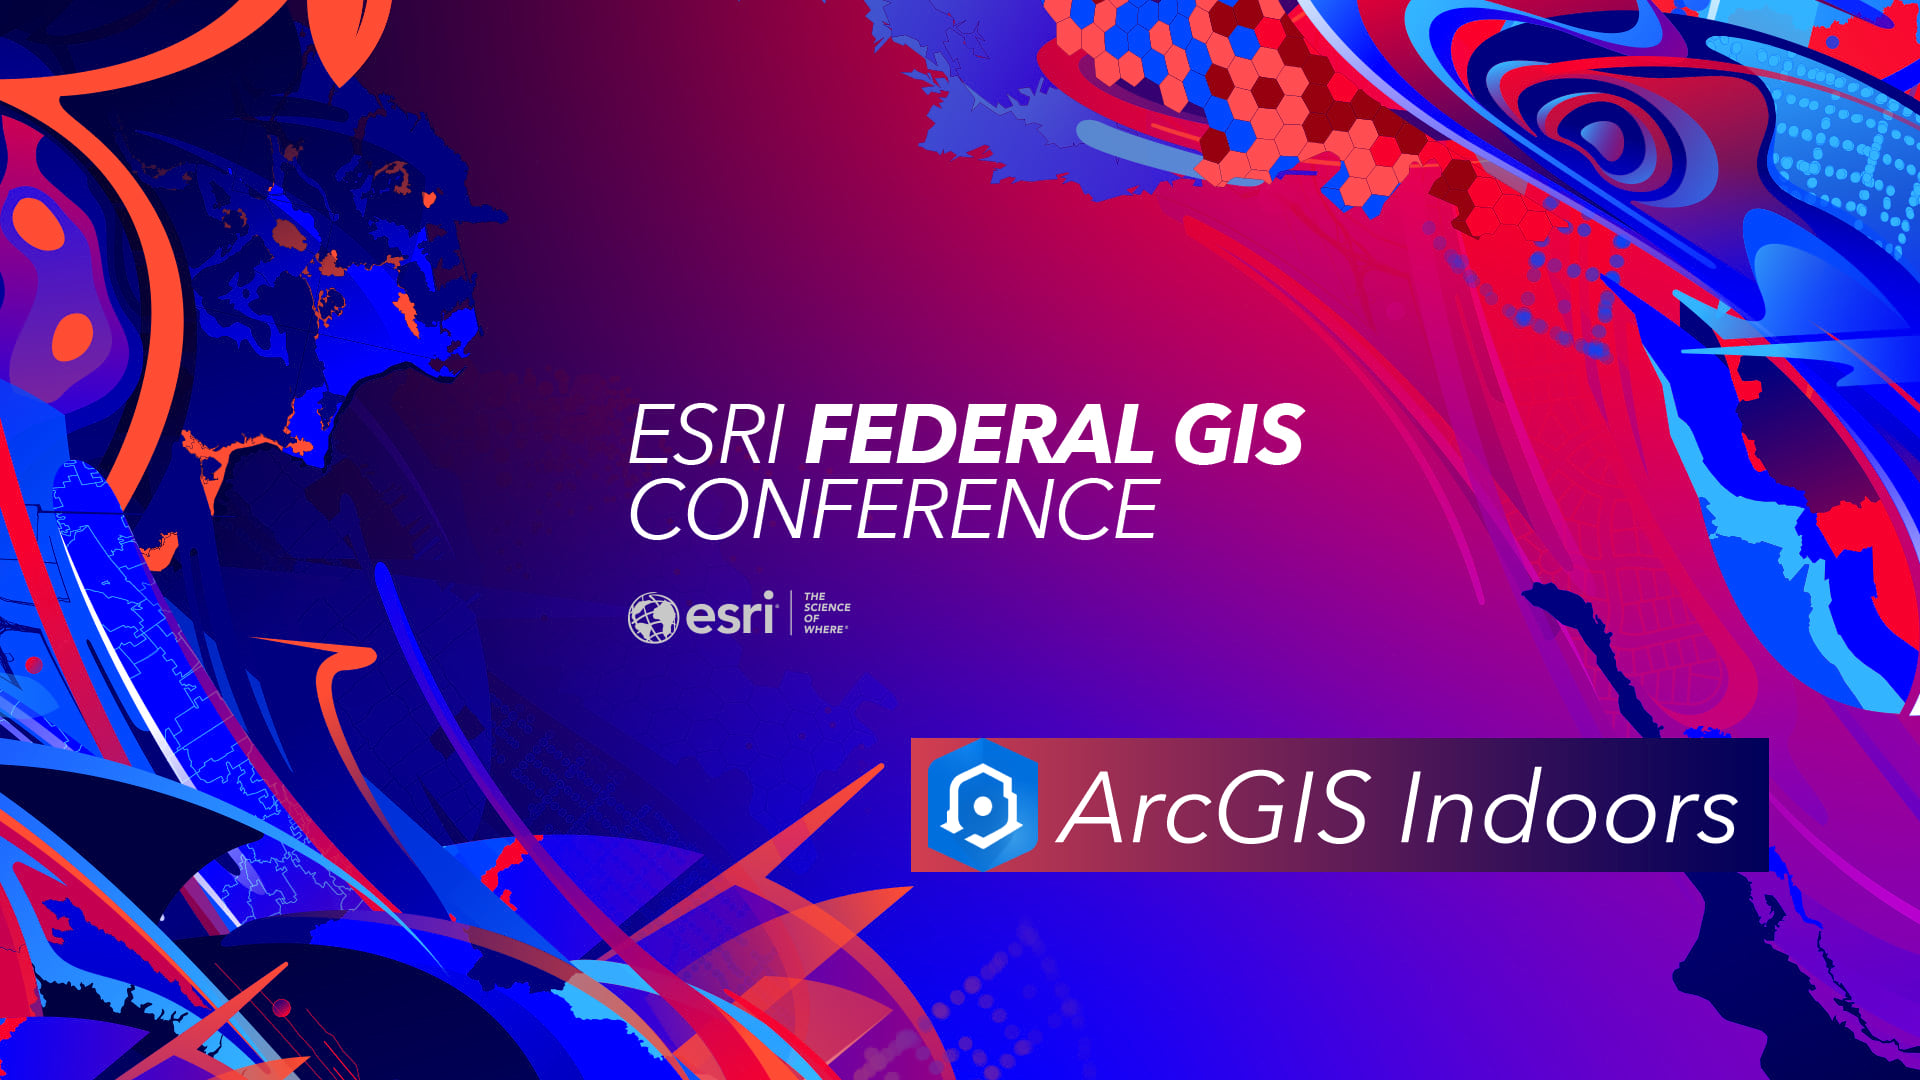 ArcGIS Indoors at 2021 FedGIS Conference